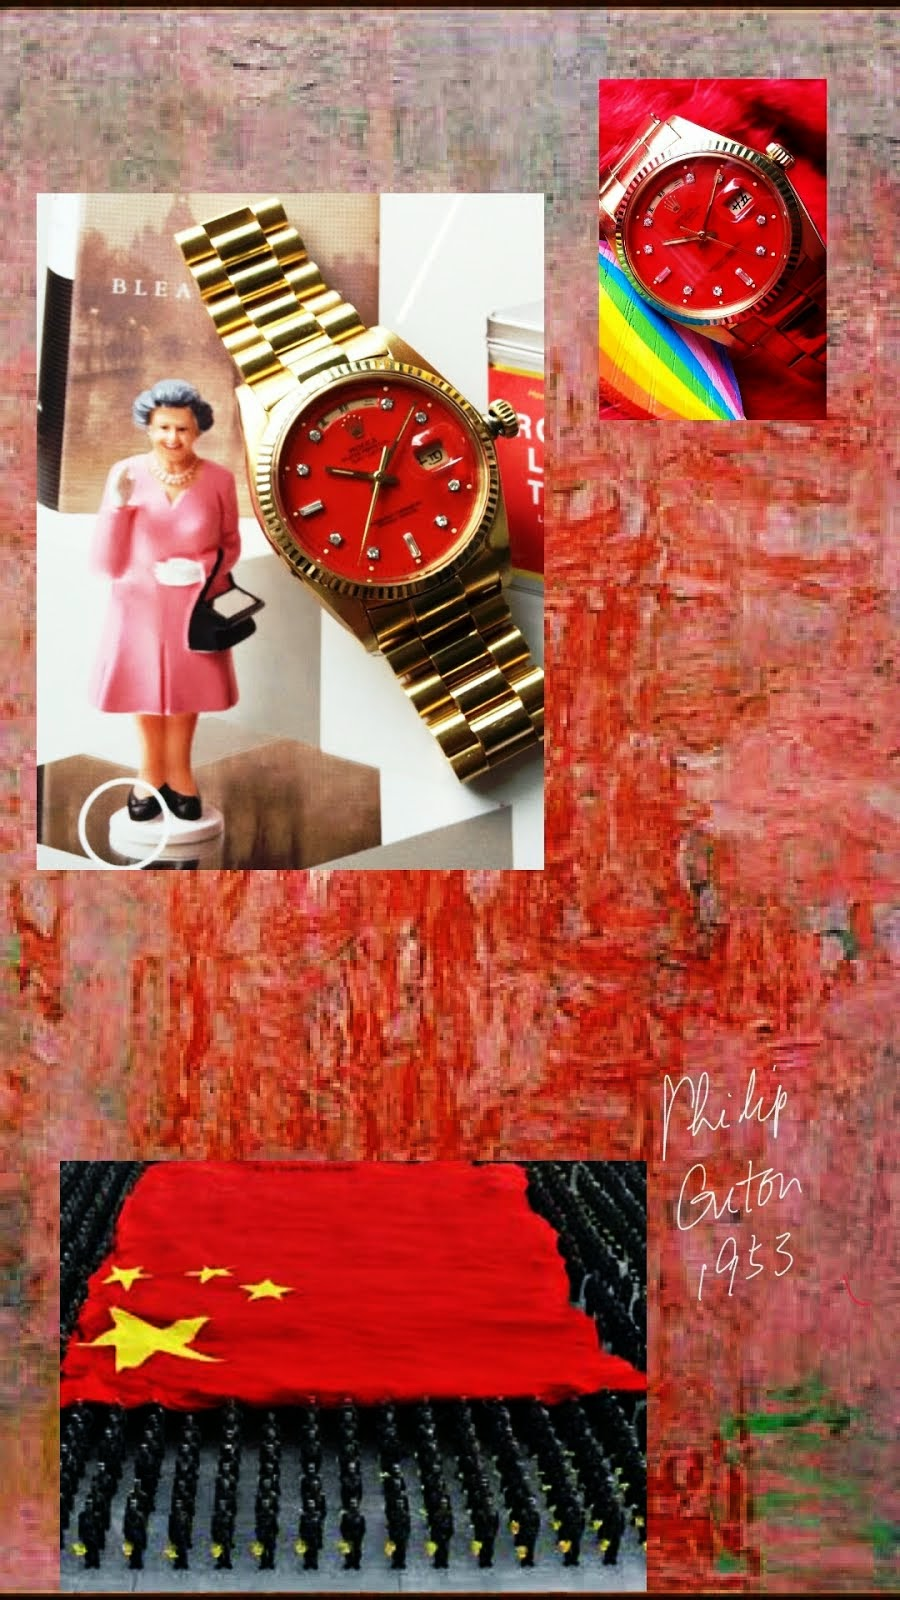 Rolex 1803 and Philip Guston's Zone